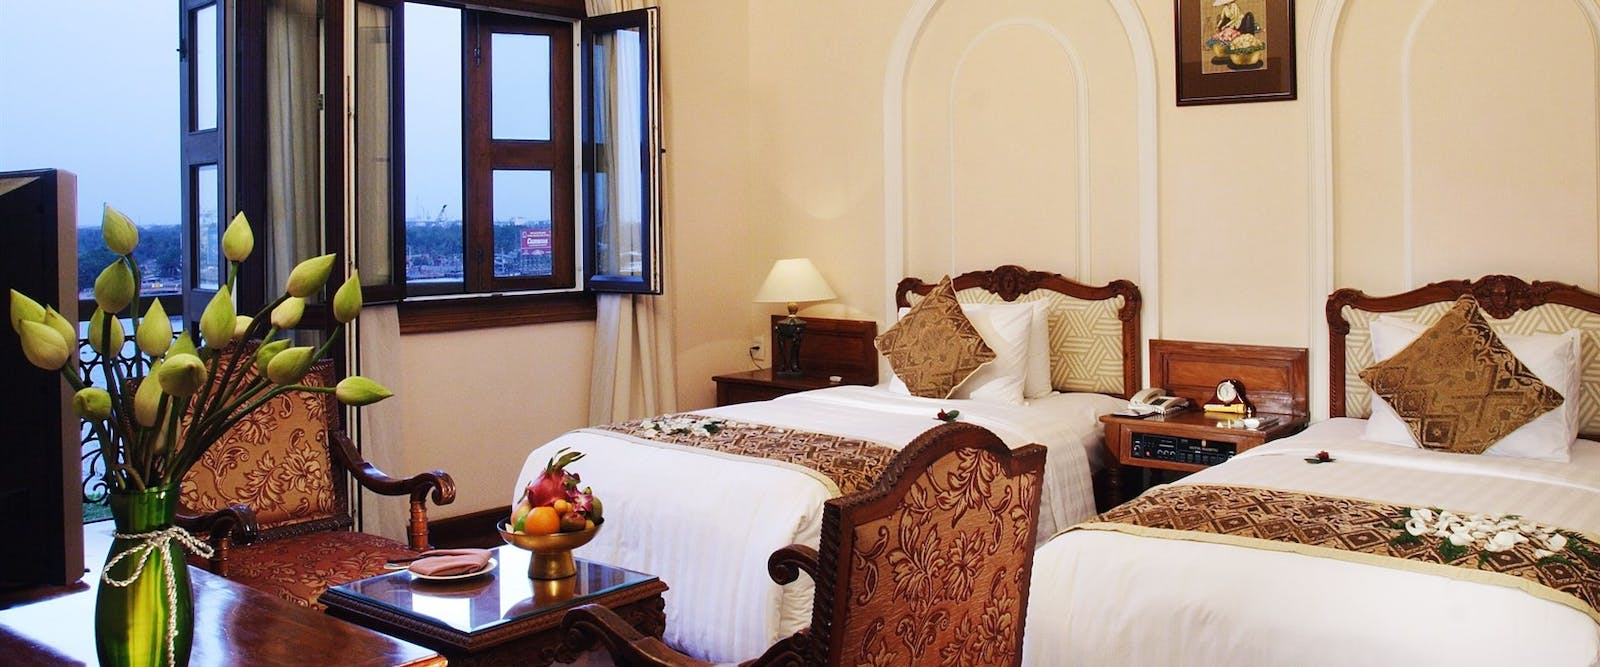 Classic saigon river deluxe bedroom at Hotel Majestic